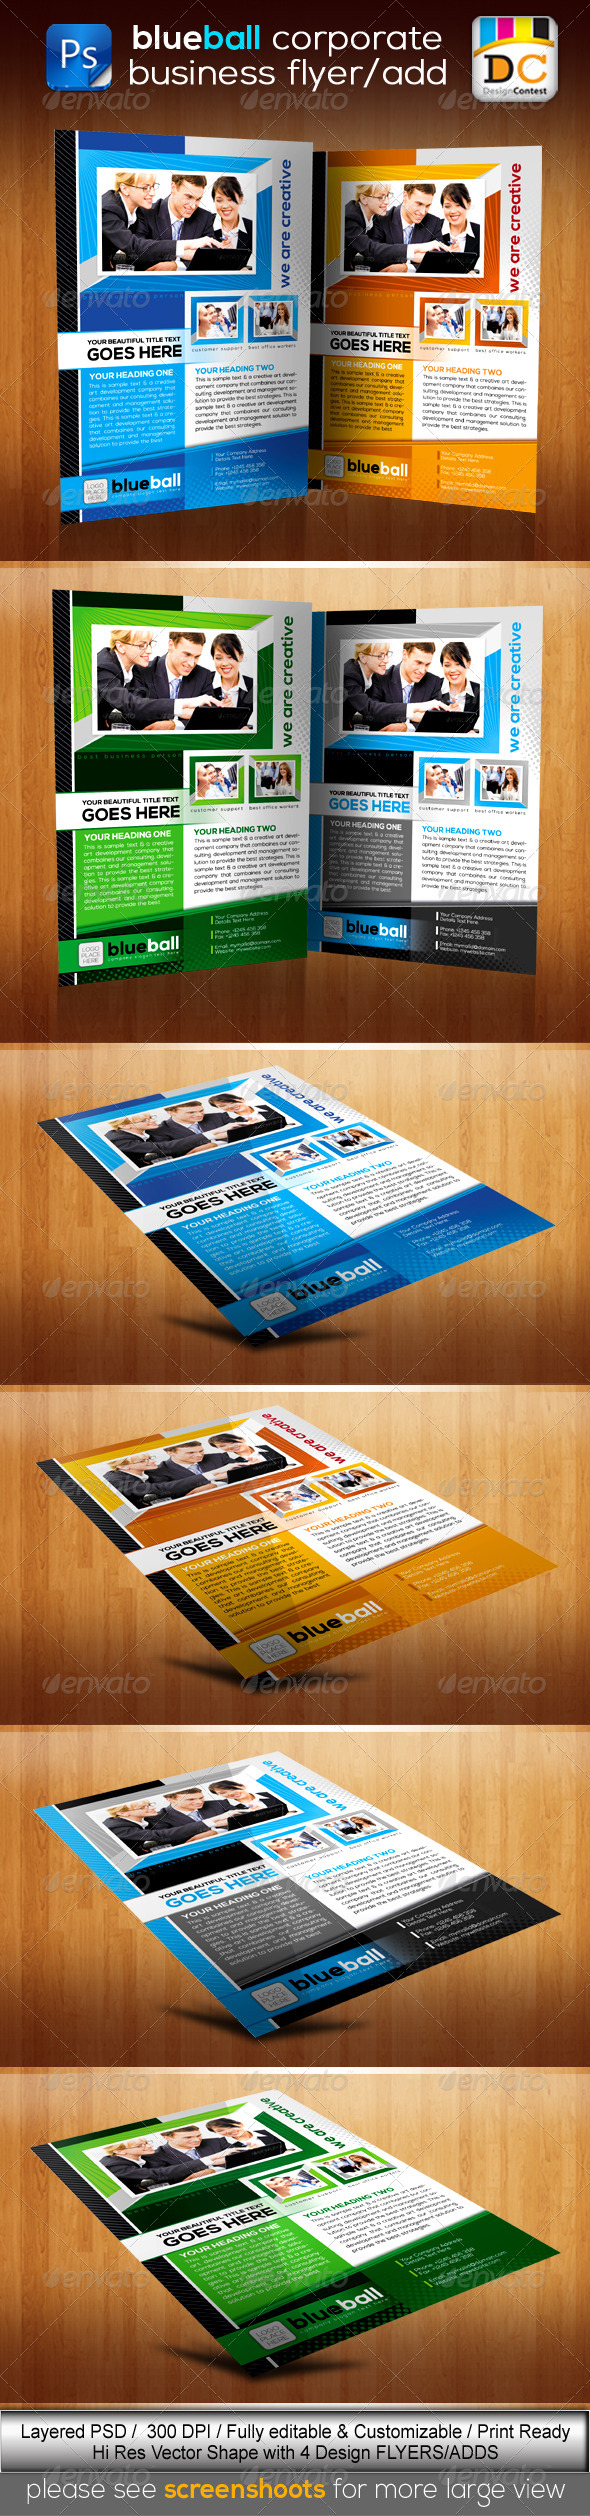 BlueBall Corporate Business Flyers/Adds - Corporate Flyers